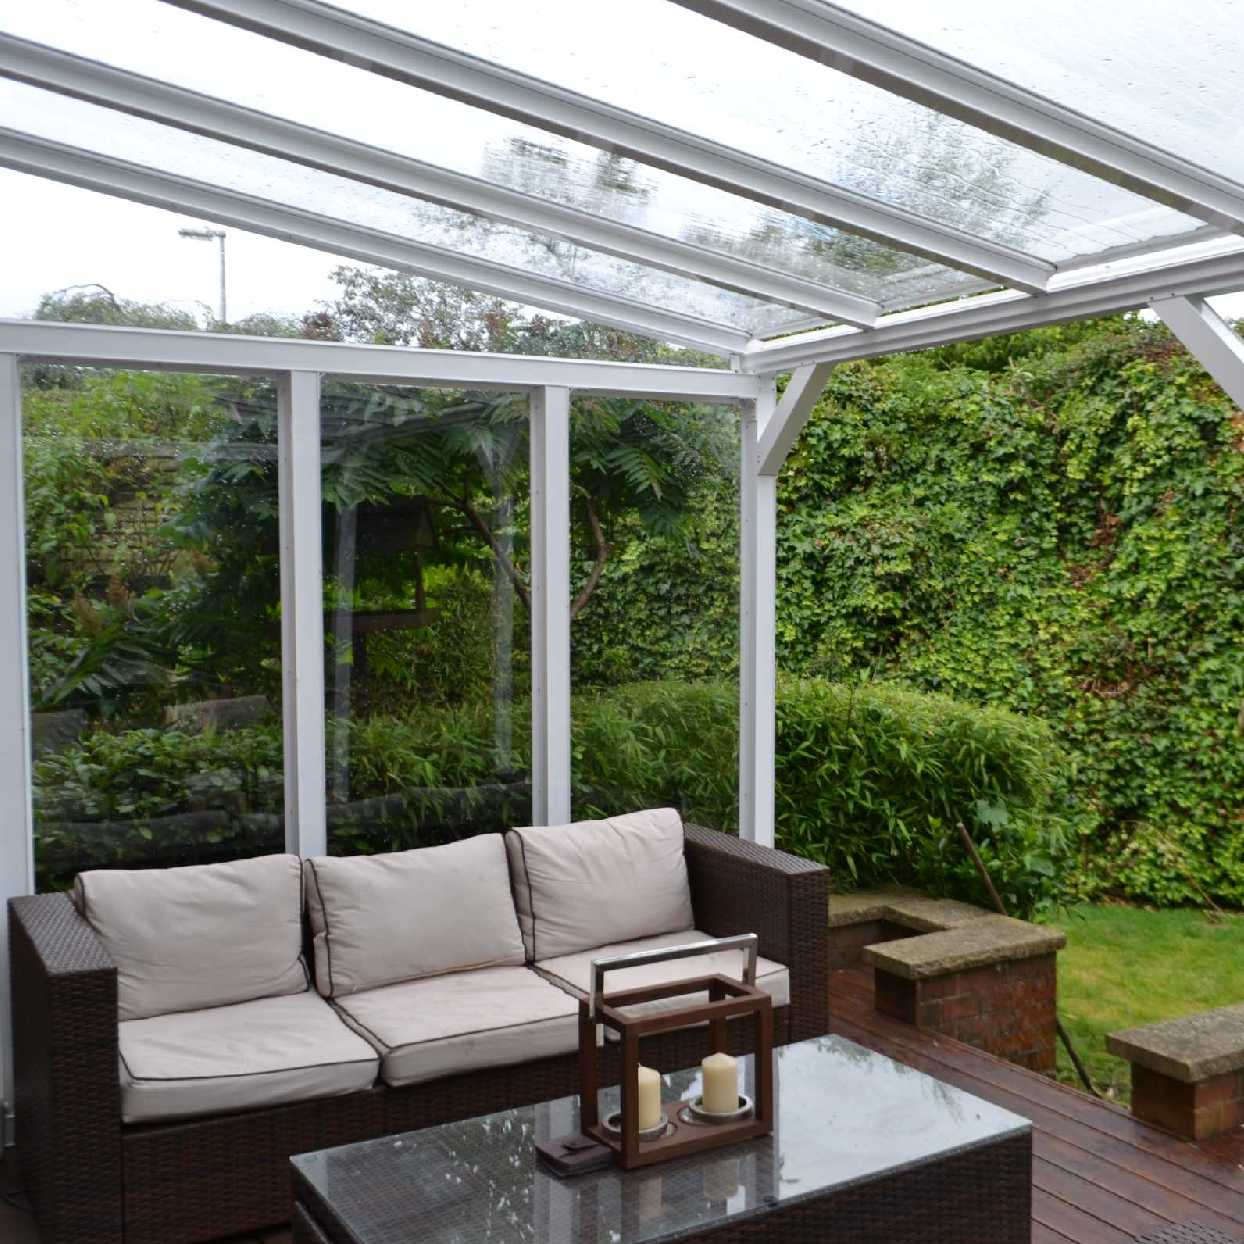 Great selection of Omega Smart White Lean-To Canopy with 16mm Polycarbonate Glazing - 7.4m (W) x 3.0m (P), (4) Supporting Posts